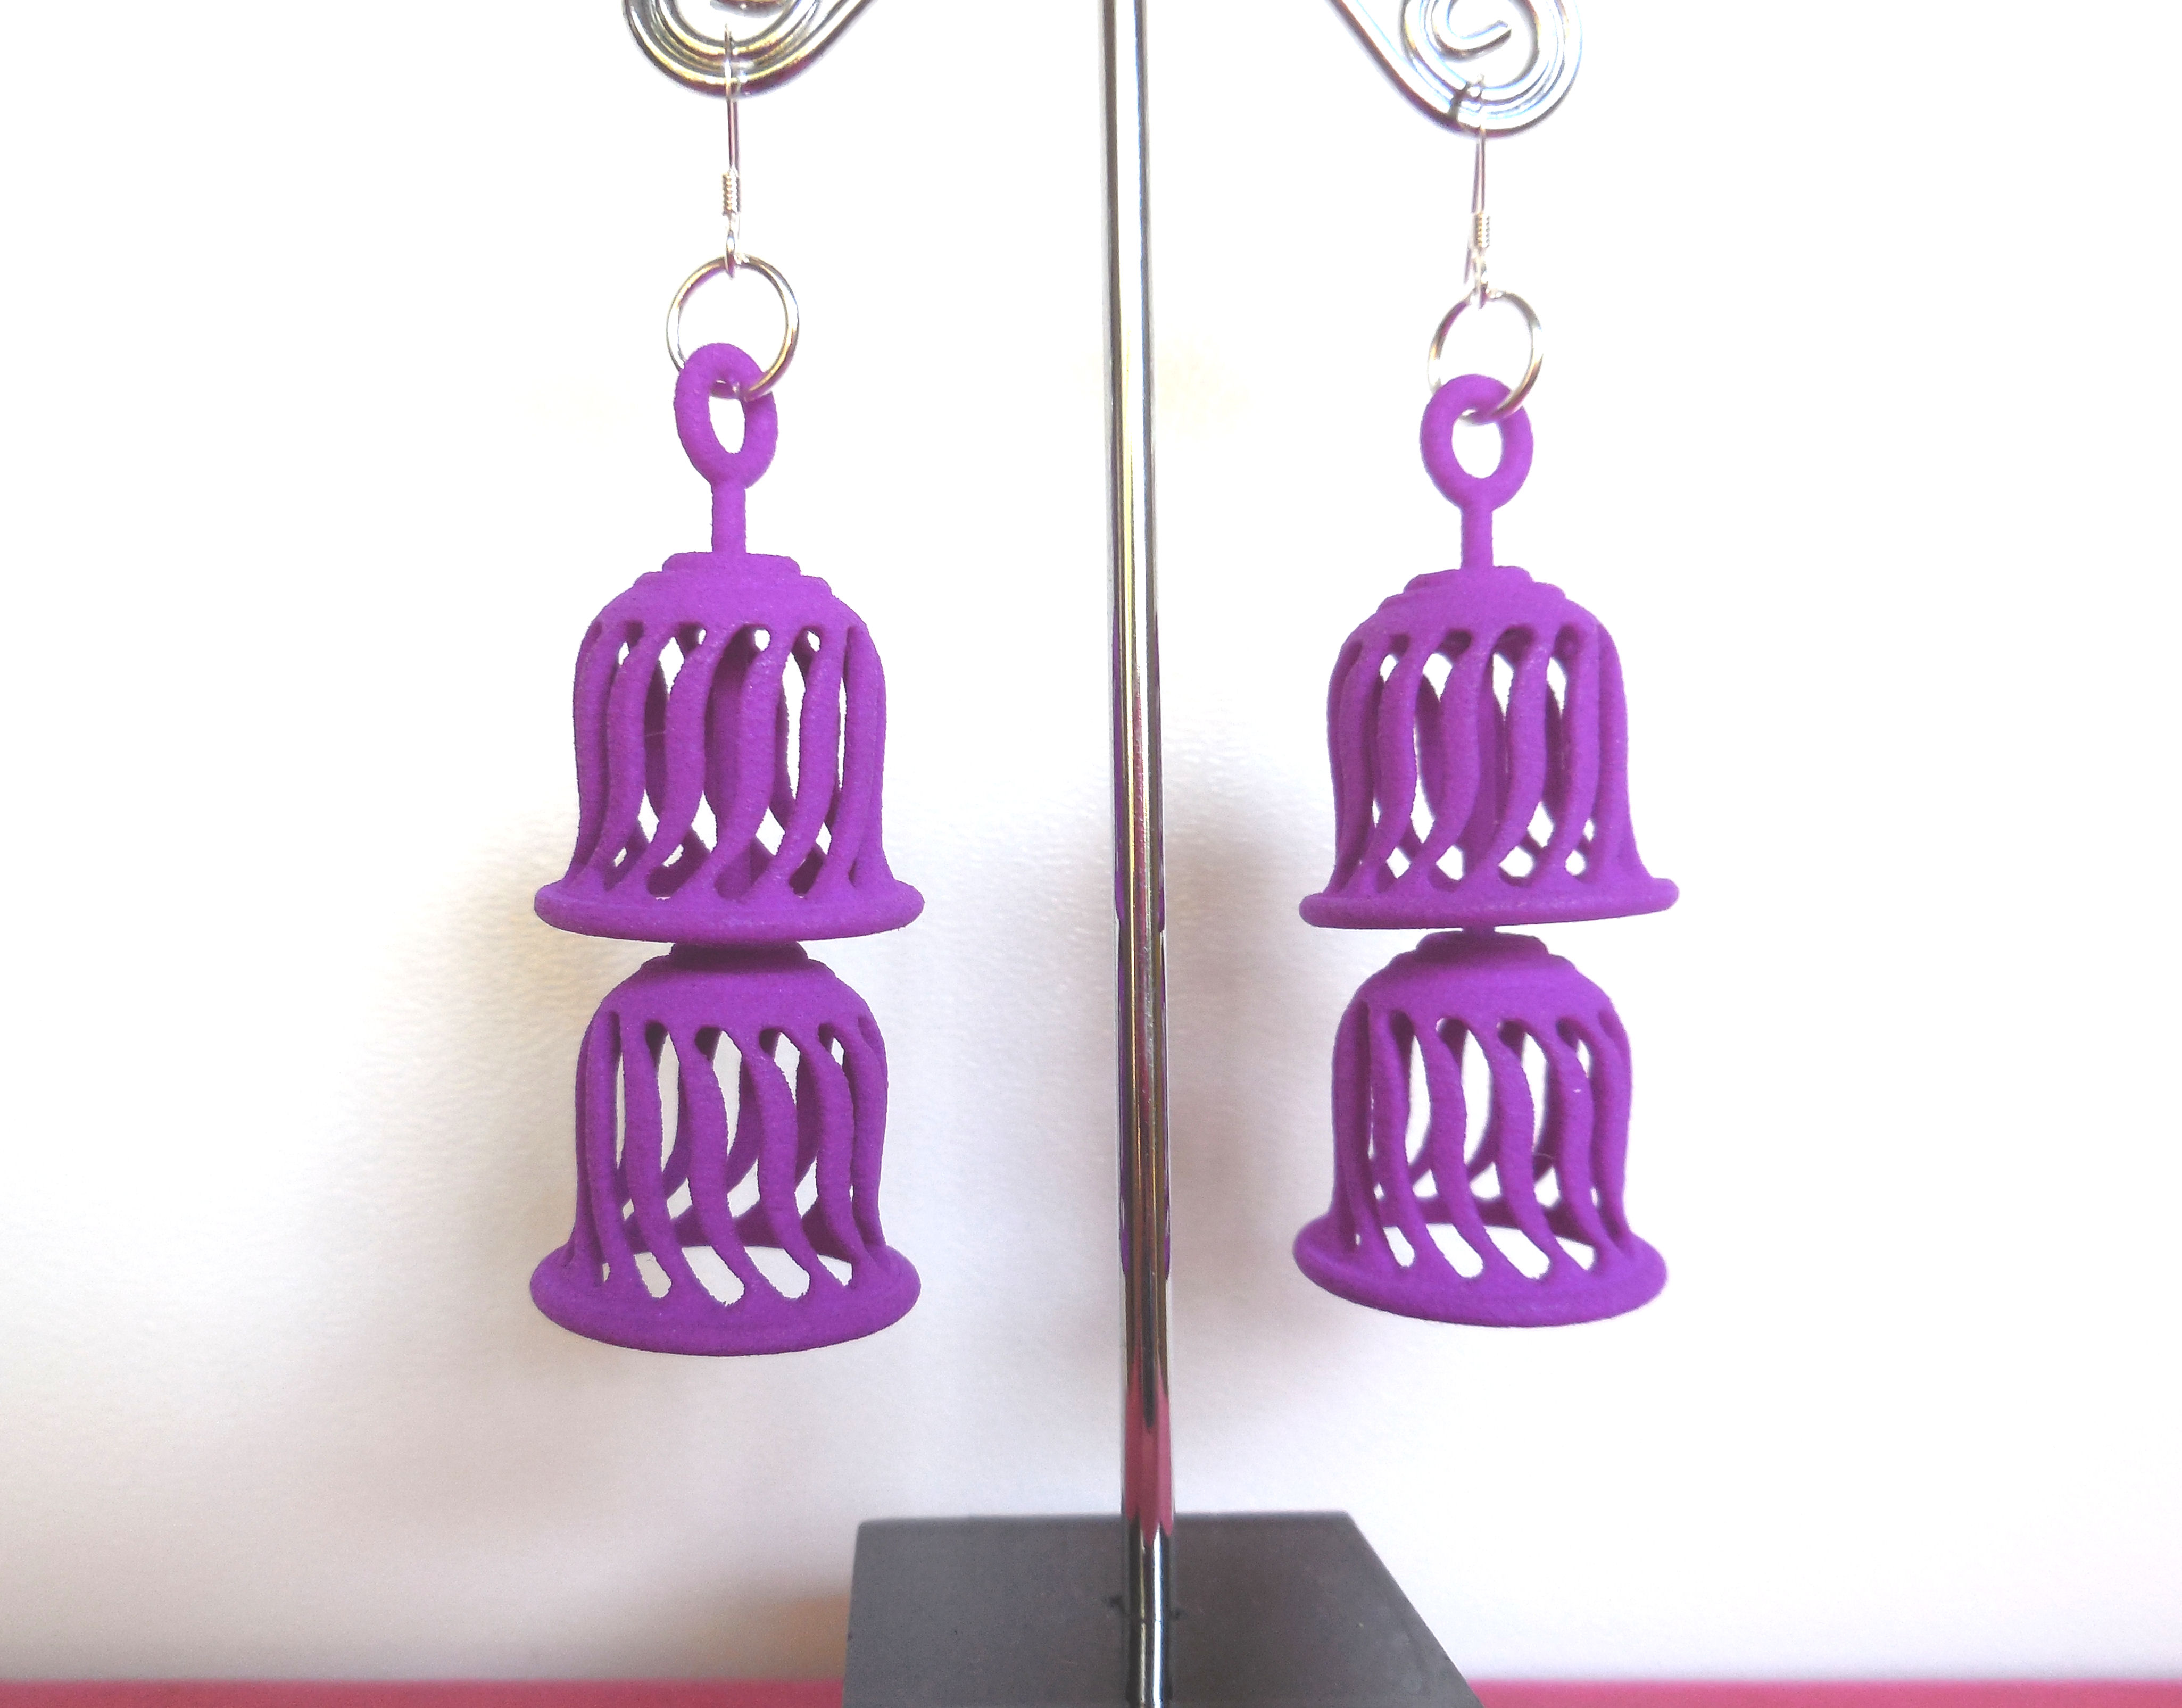 More 3D Printed Earrings added to the Etsy Shop